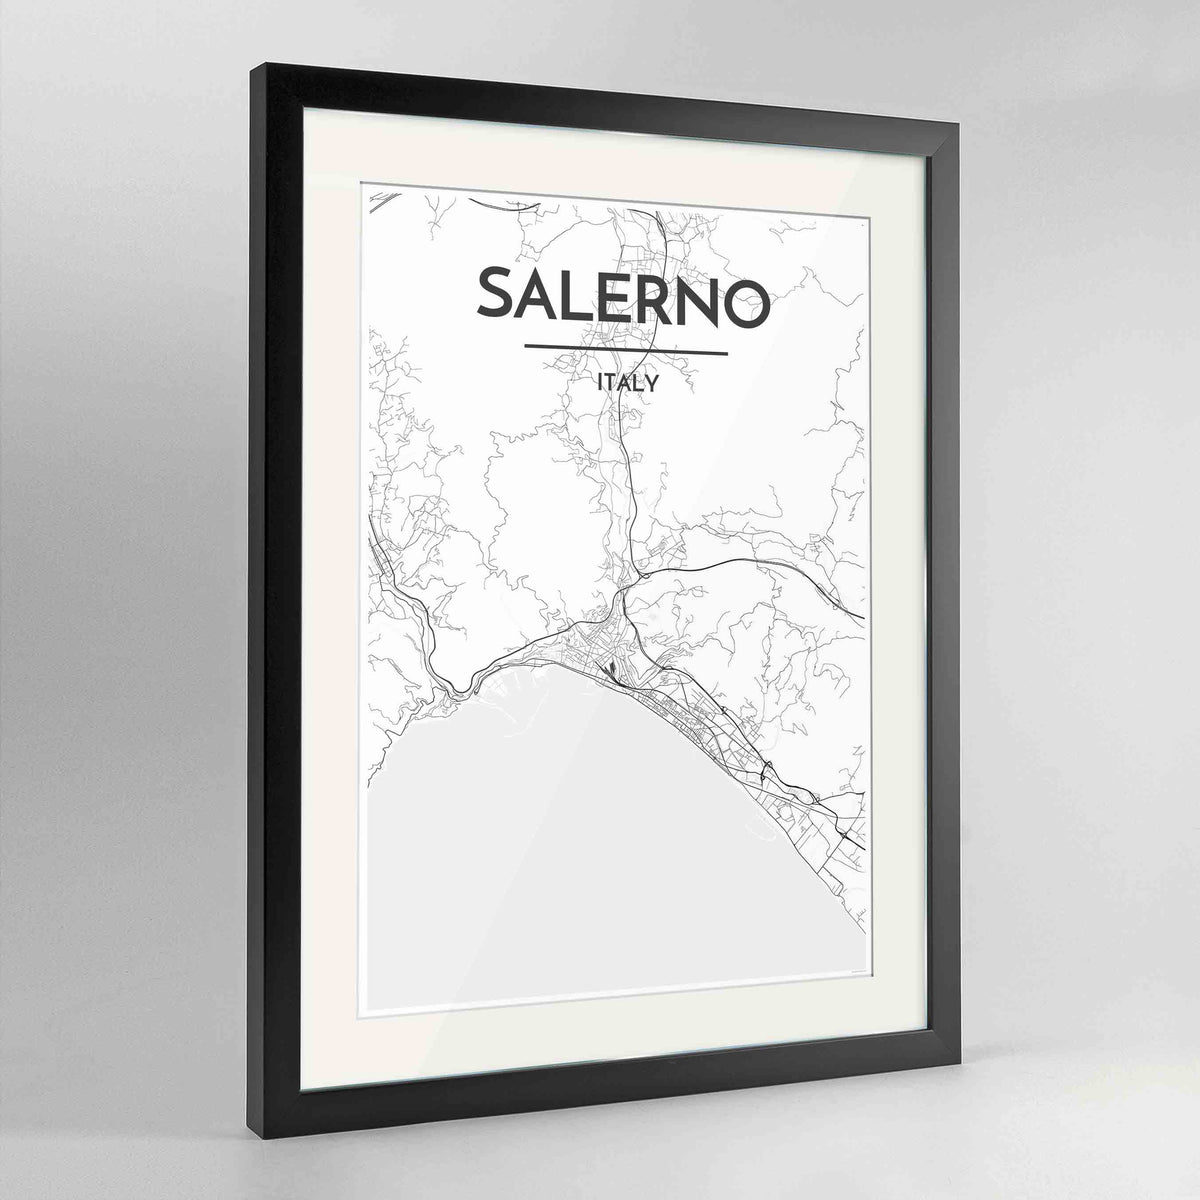 "Framed Salerno Map Art Print 24x36"" Contemporary Black frame Point Two Design Group"